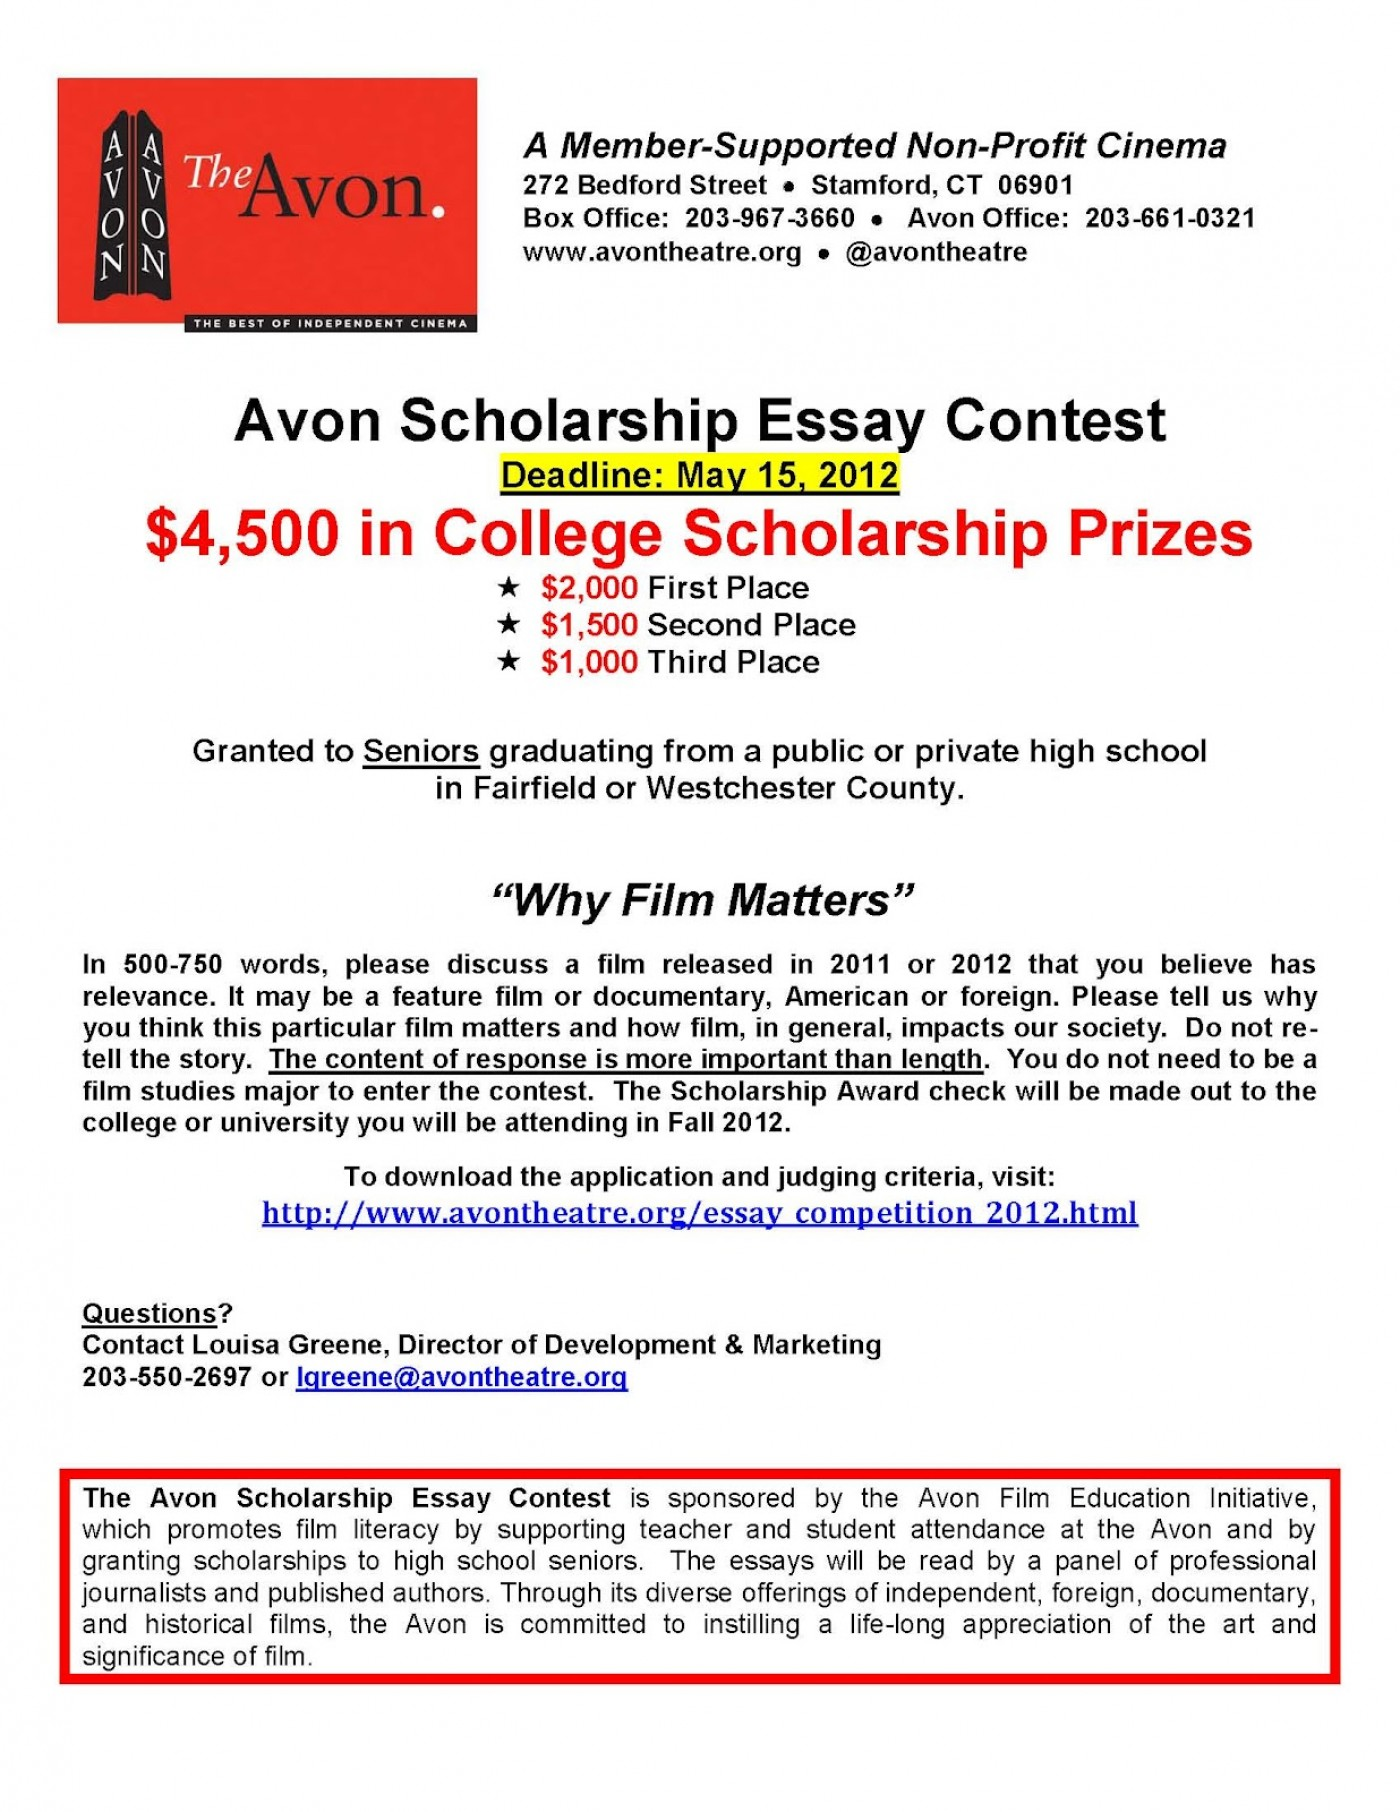 002 No Essay Collegeip Prowler Freeips For High School Seniors Avonscholarshipessaycontest2012 In Texas California Class Of Short Example Wondrous Scholarship Scholarships 2019 Graduates Applications 1400